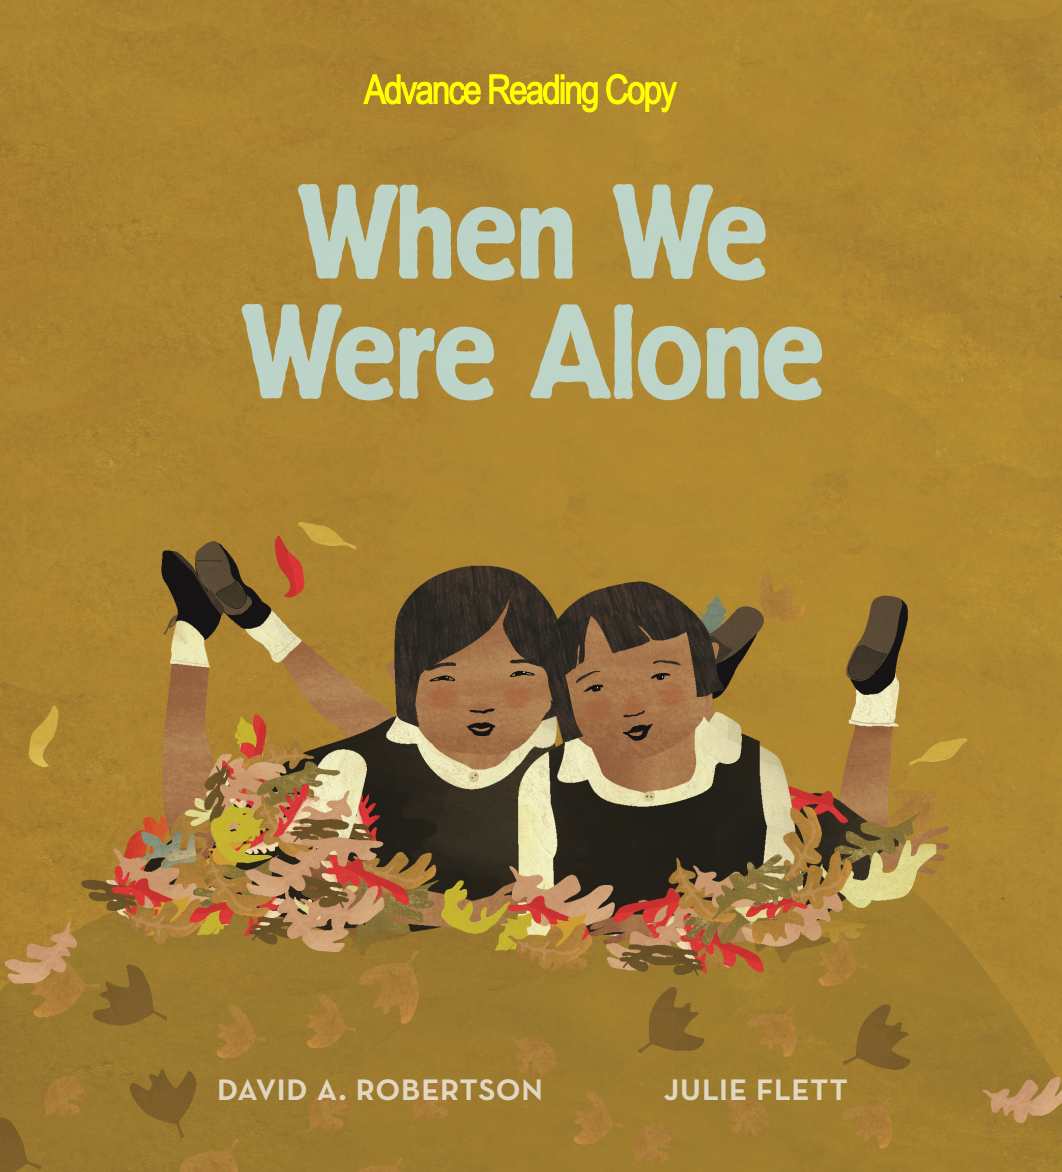 Written by David Alexander Robertson and illustrated by Julie Flett, When  We Were Alone will be released in January of 2017 from Highwater Press.